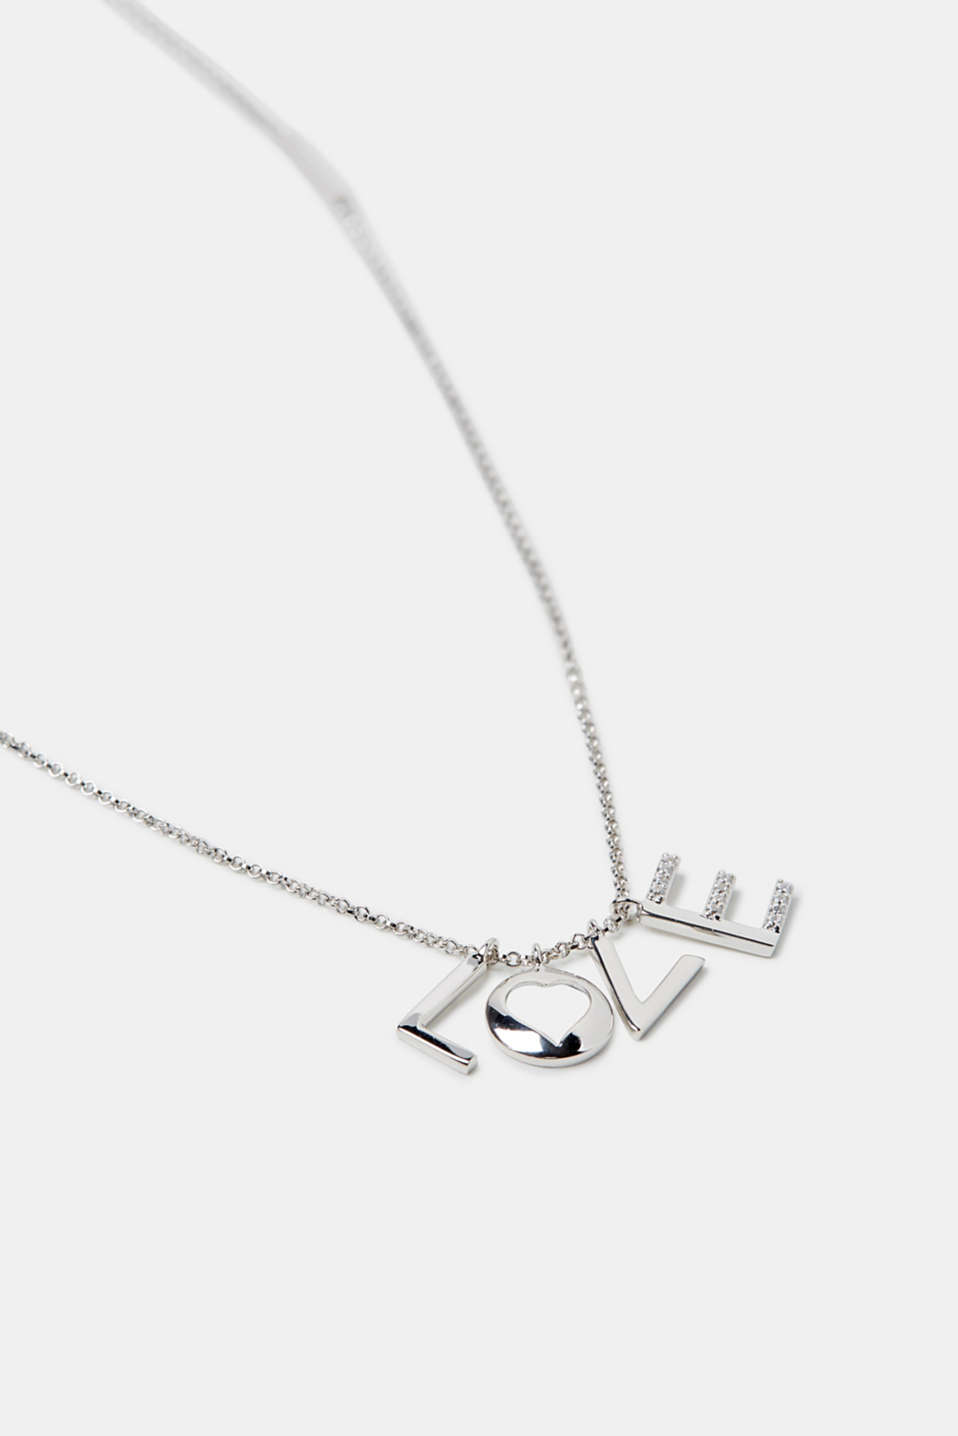 Necklace with a LOVE pendant, silver